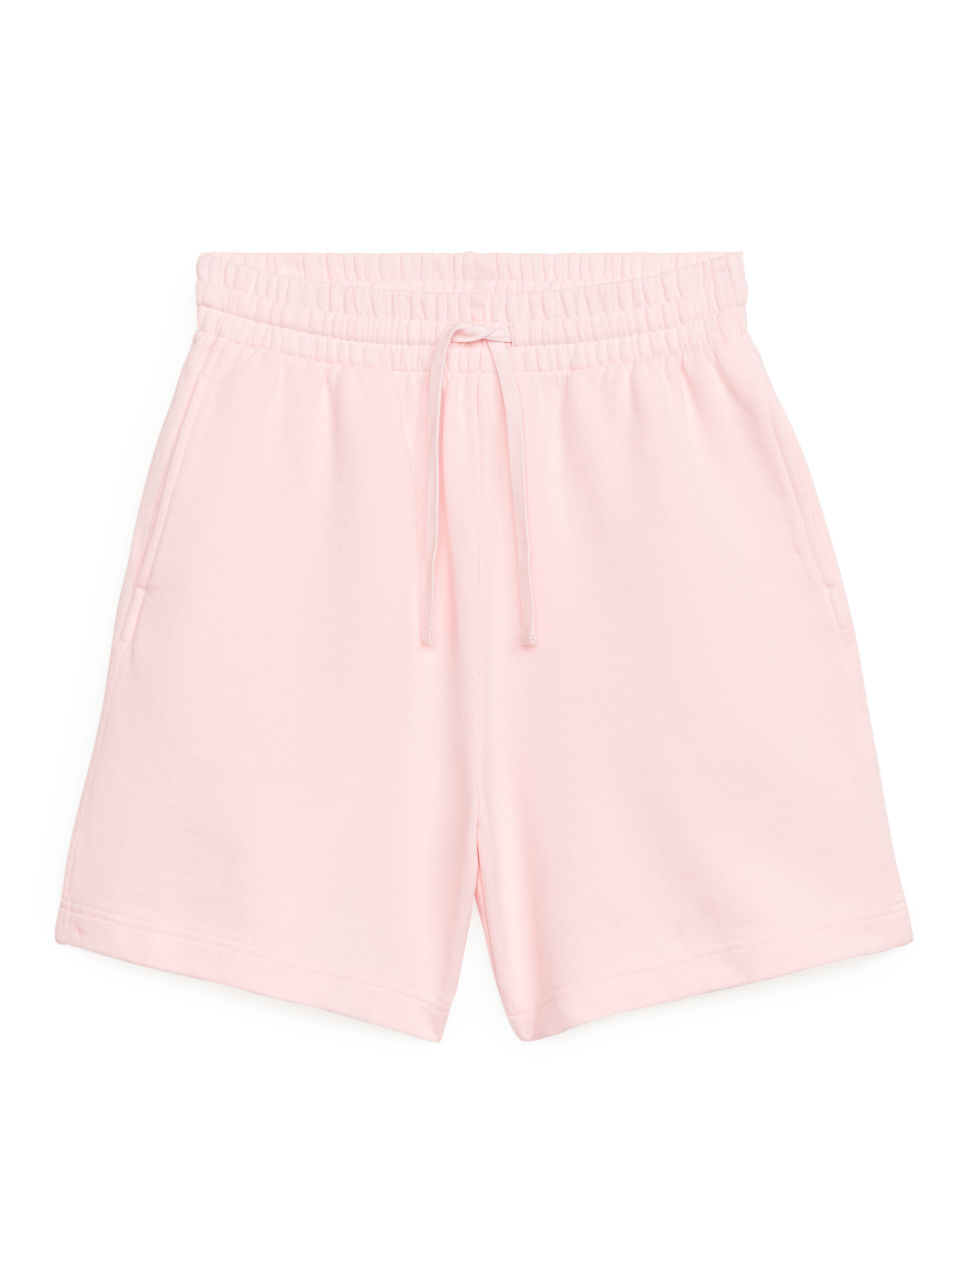 French Terry Shorts - Pink